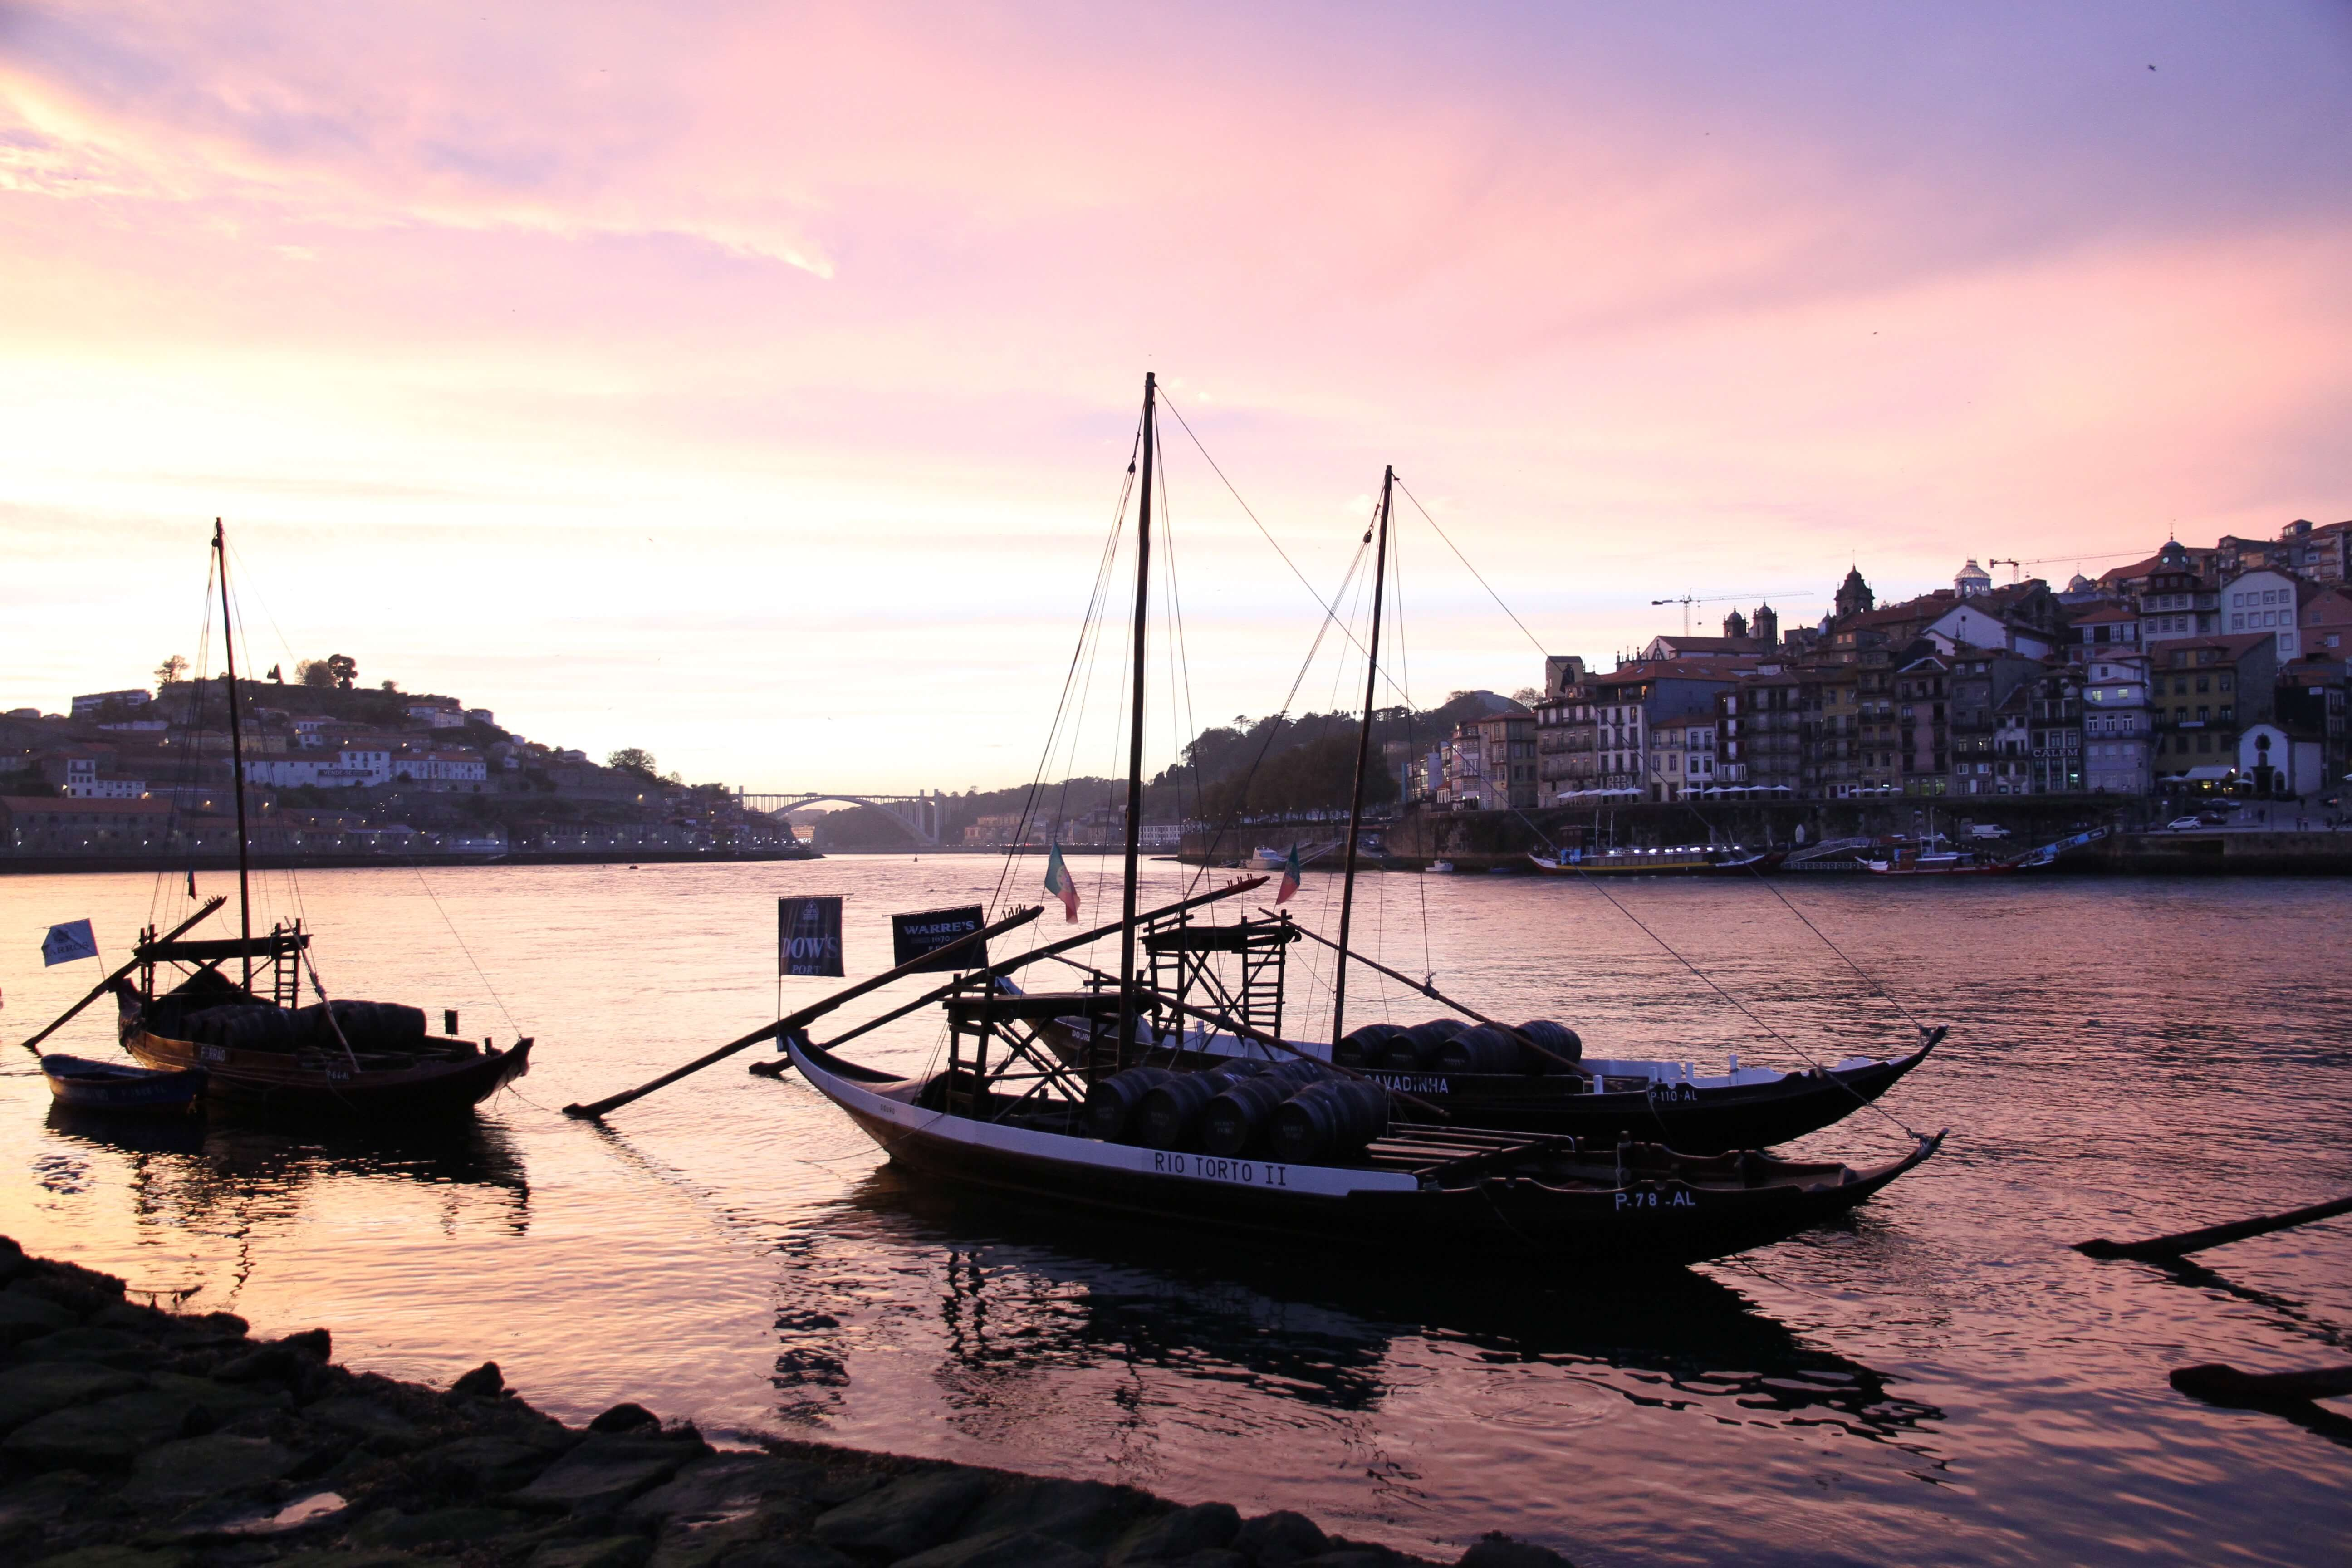 Sonnenuntergang in Porto – ein Highlight beim Sightseeing